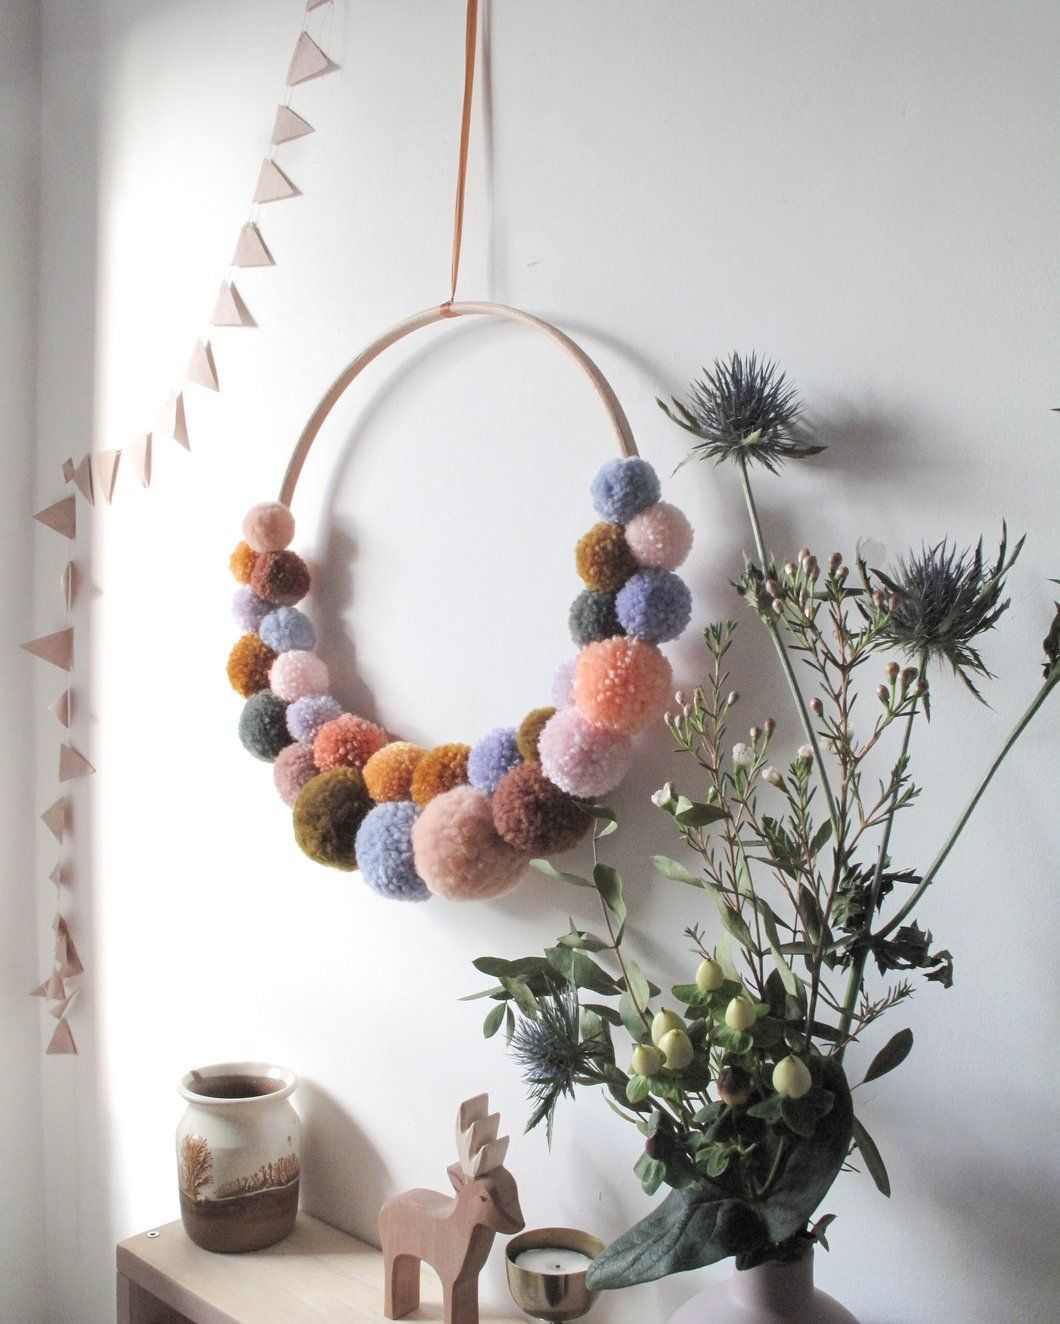 Photo of Large Pom Pom Wreath in Multi Color Mix